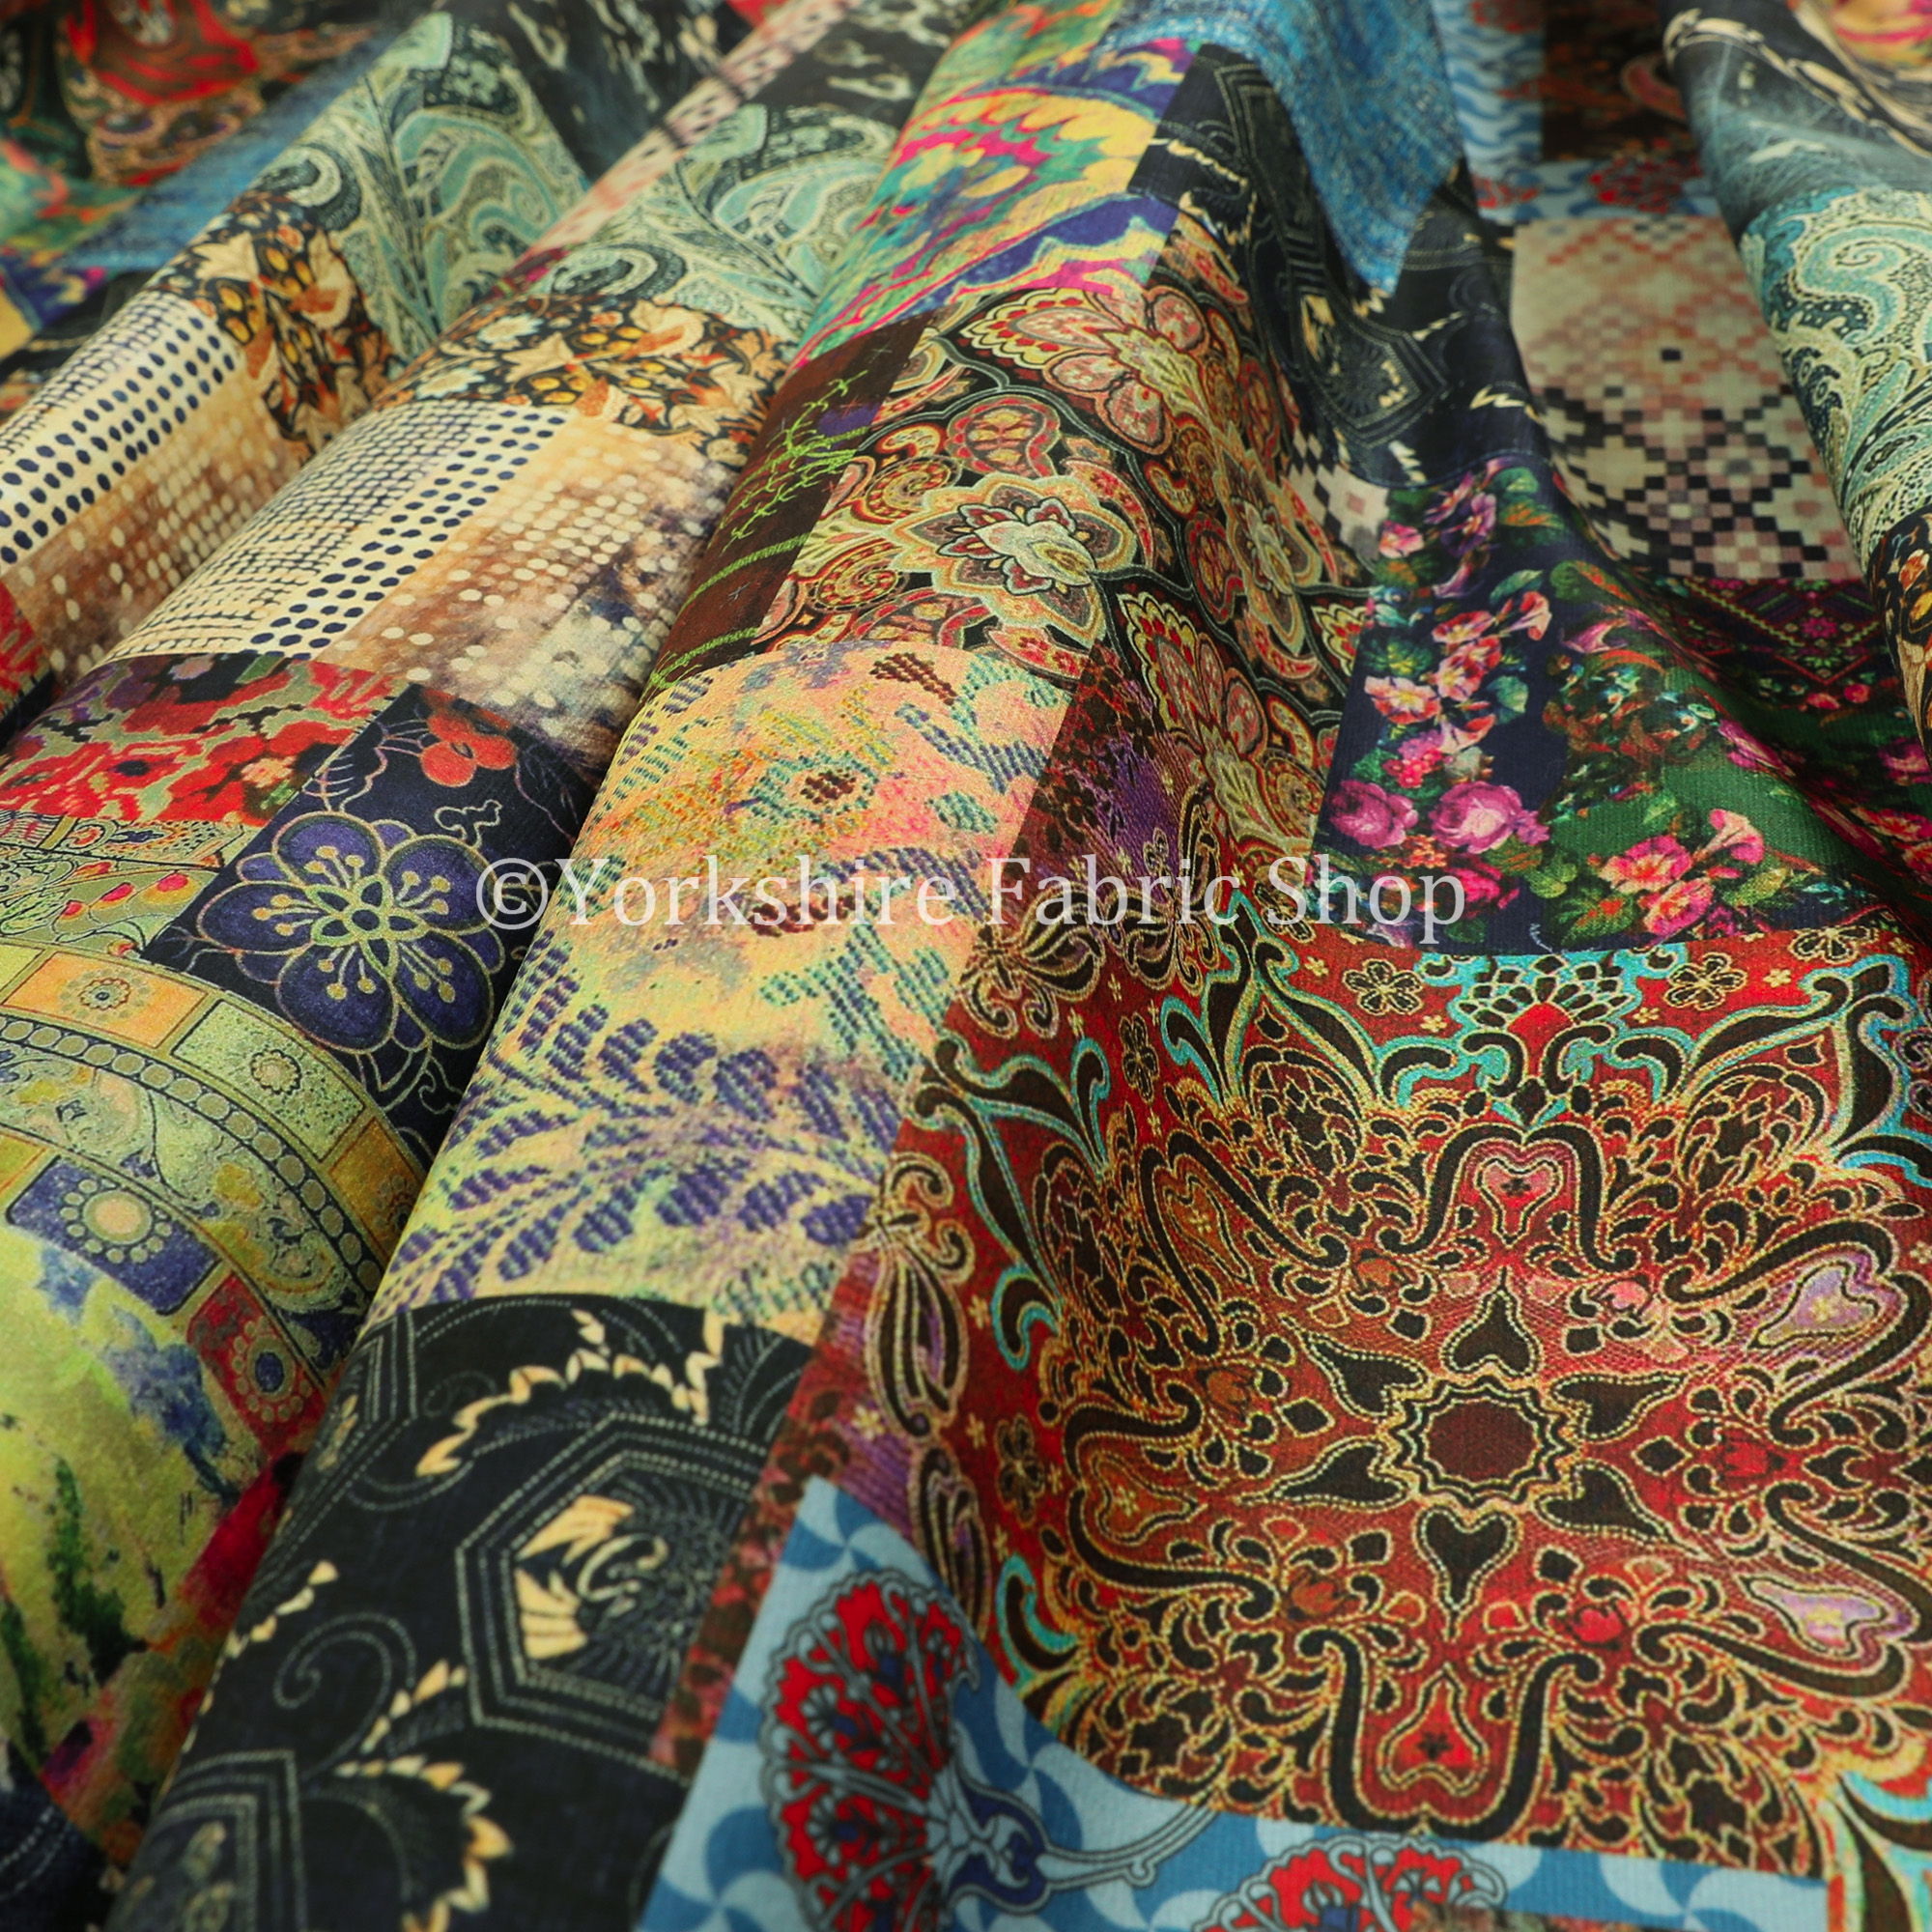 Yorkshire Fabric Shop CTR-66 Velvet Patchwork Fabric